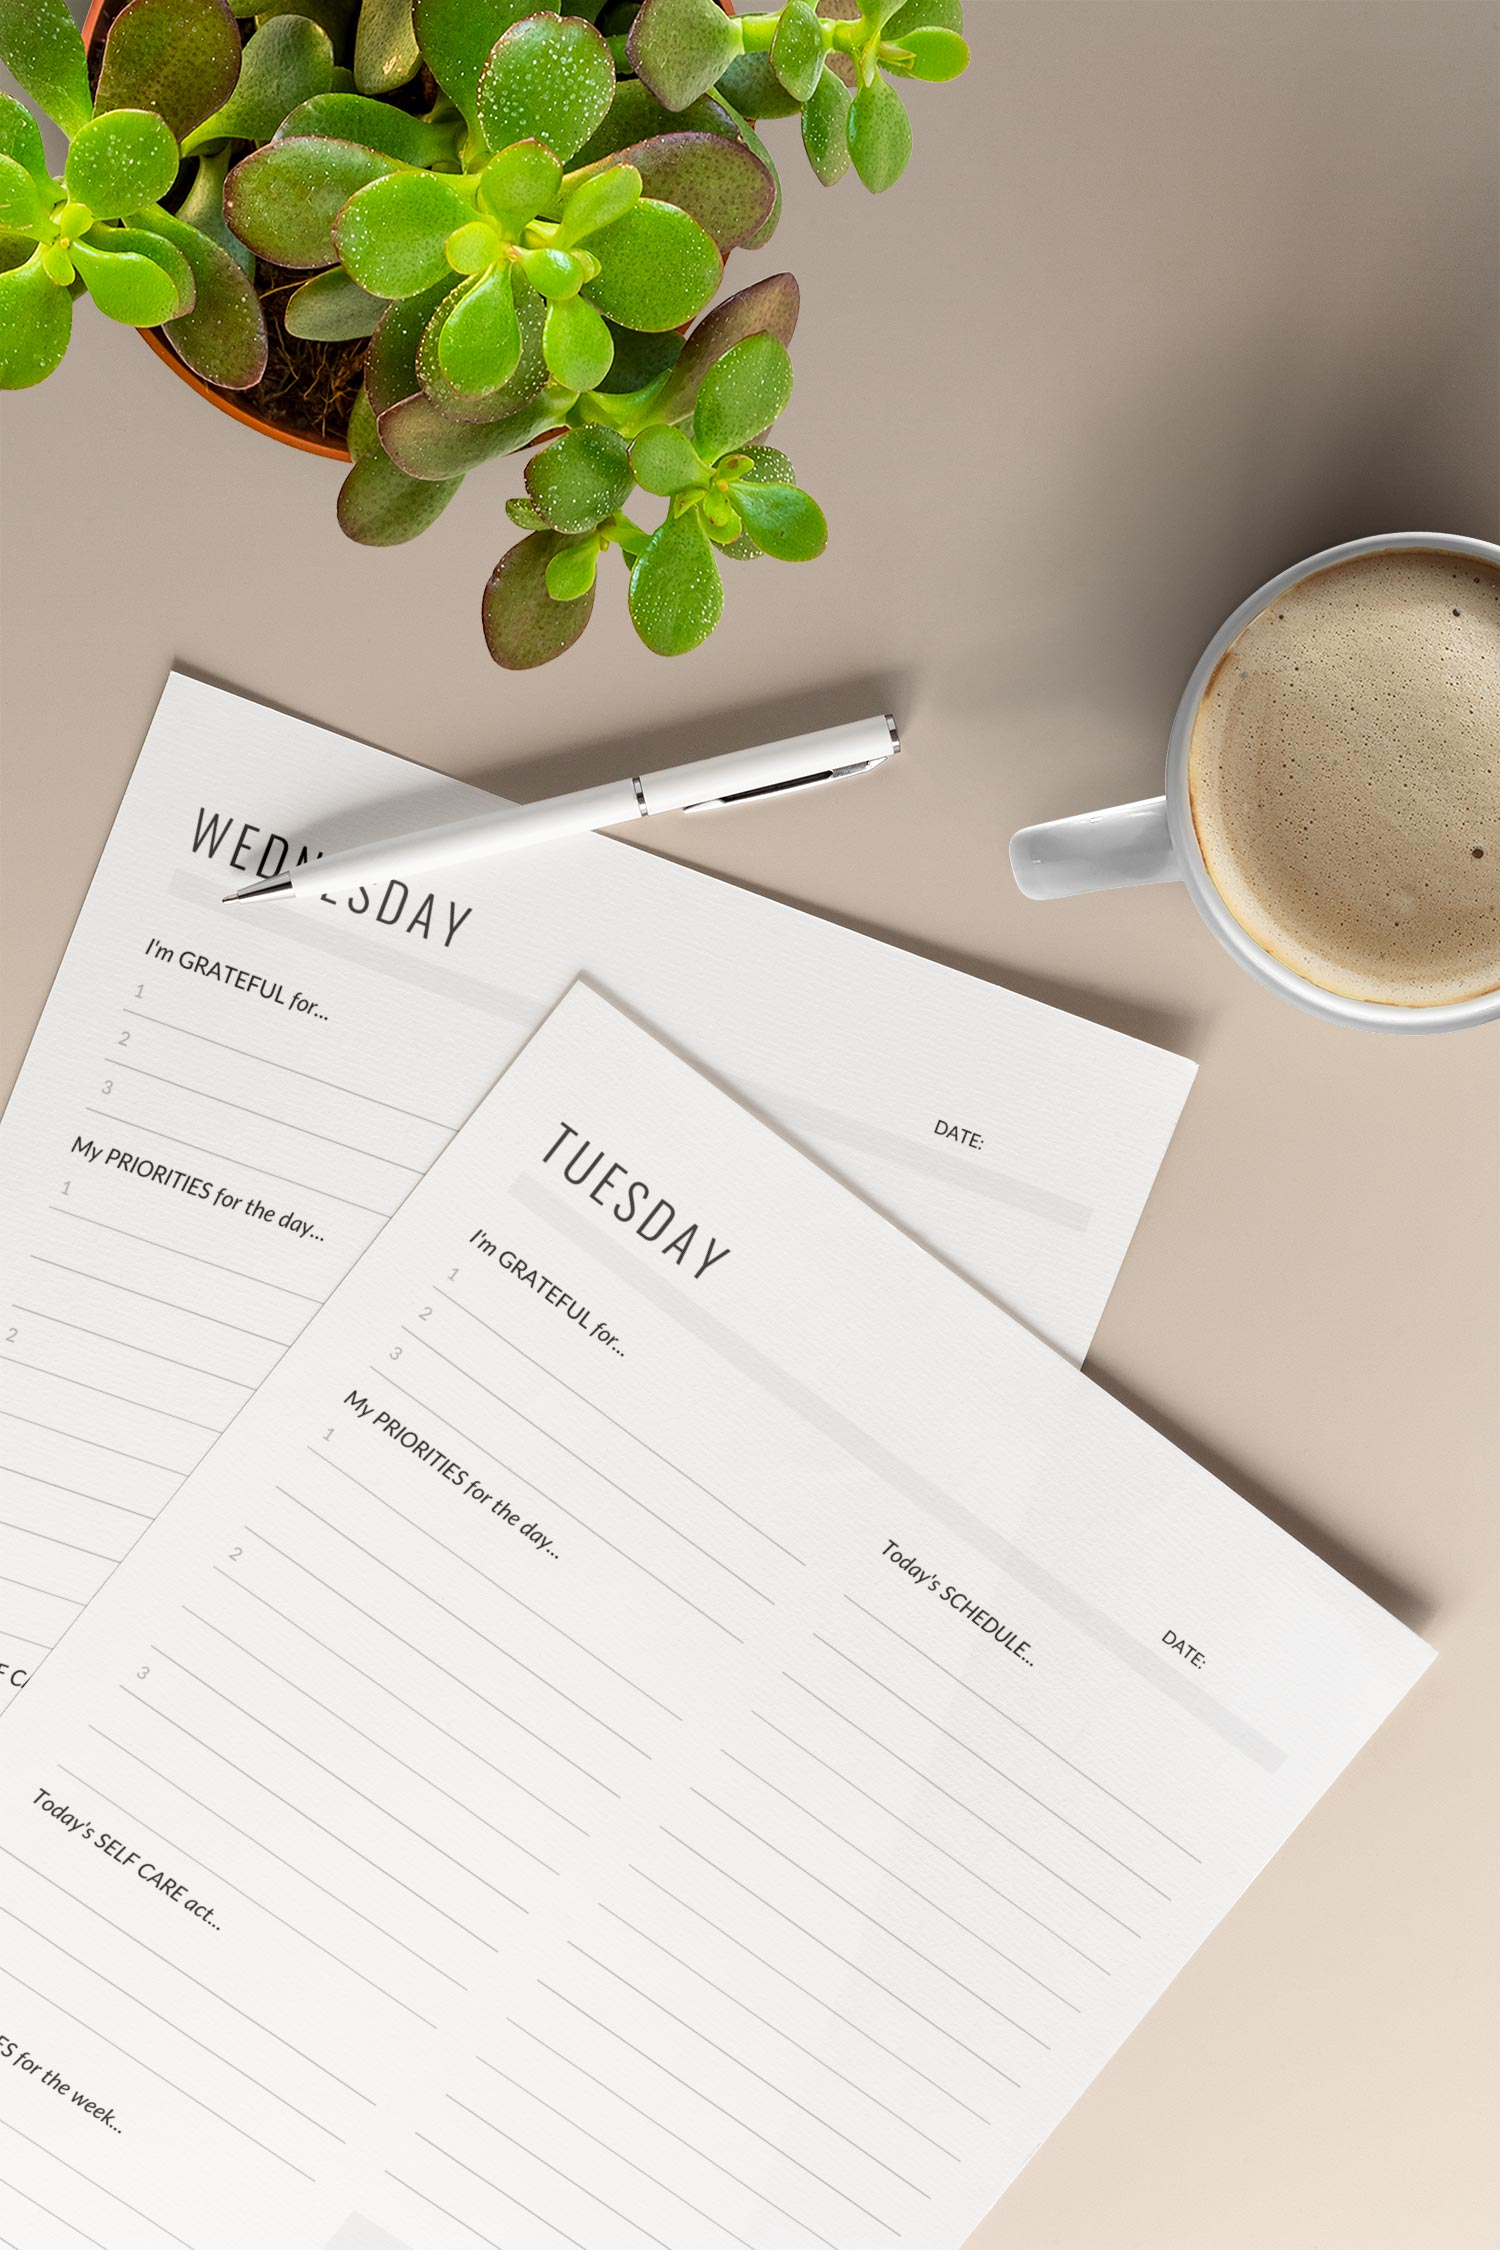 Daily planner pages sitting at a table with a pen, mug of coffee, and a succulent. The printable daily planner pages showcased are designed to help clarify priorities to ensure the user is meeting goals and setting healthy boundaries for an intentional life.